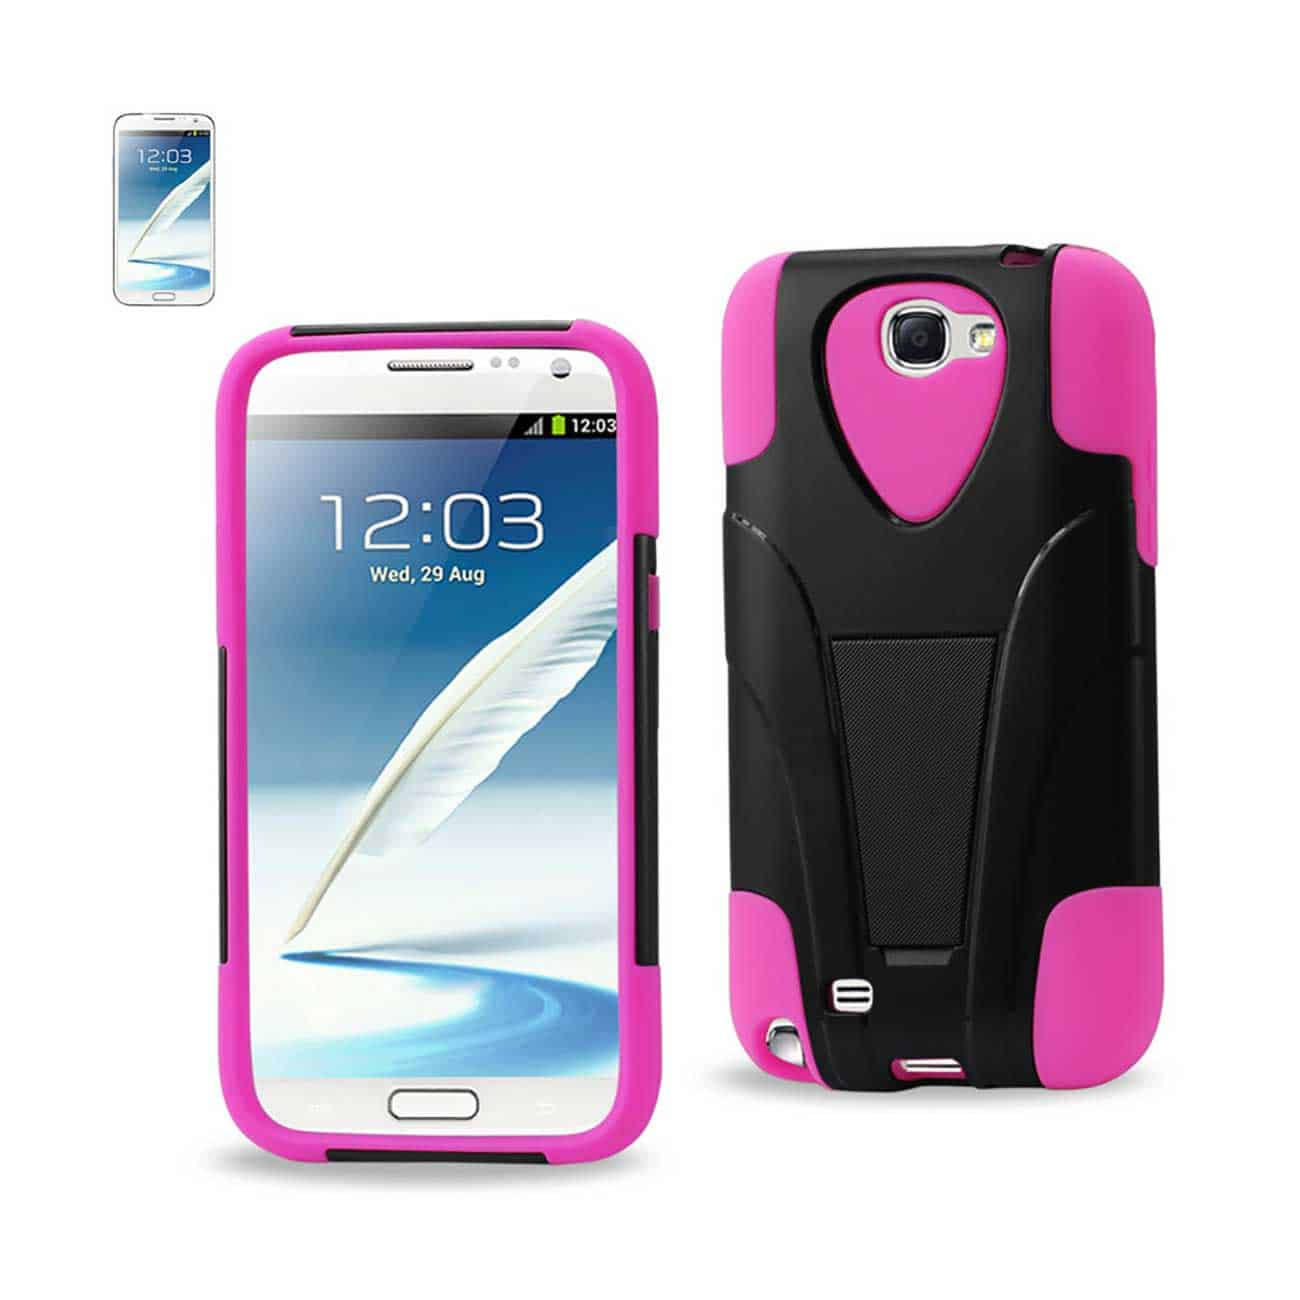 SAMSUNG GALAXY NOTE 2 HYBRID HEAVY DUTY CASE WITH KICKSTAND IN BLACK HOT PINK